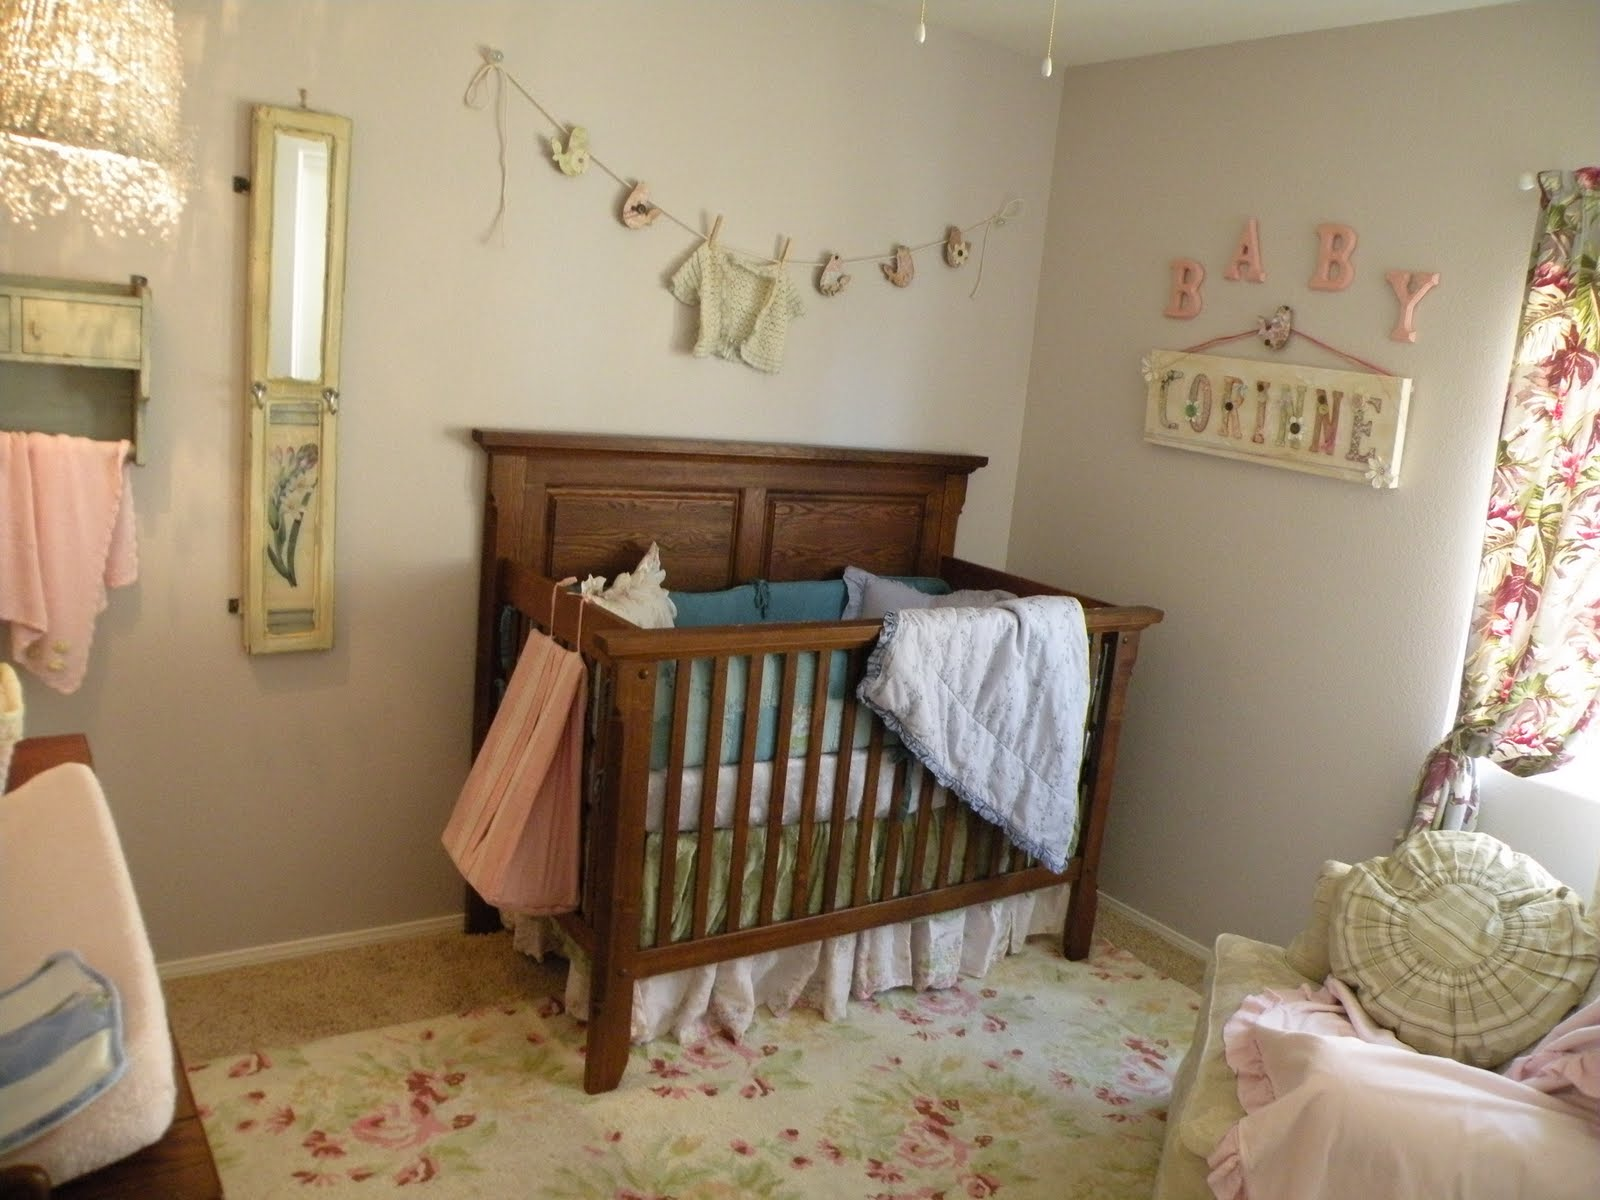 Fabulous Nursery Room With Brown Wooden Crib also Chic Wall Decor